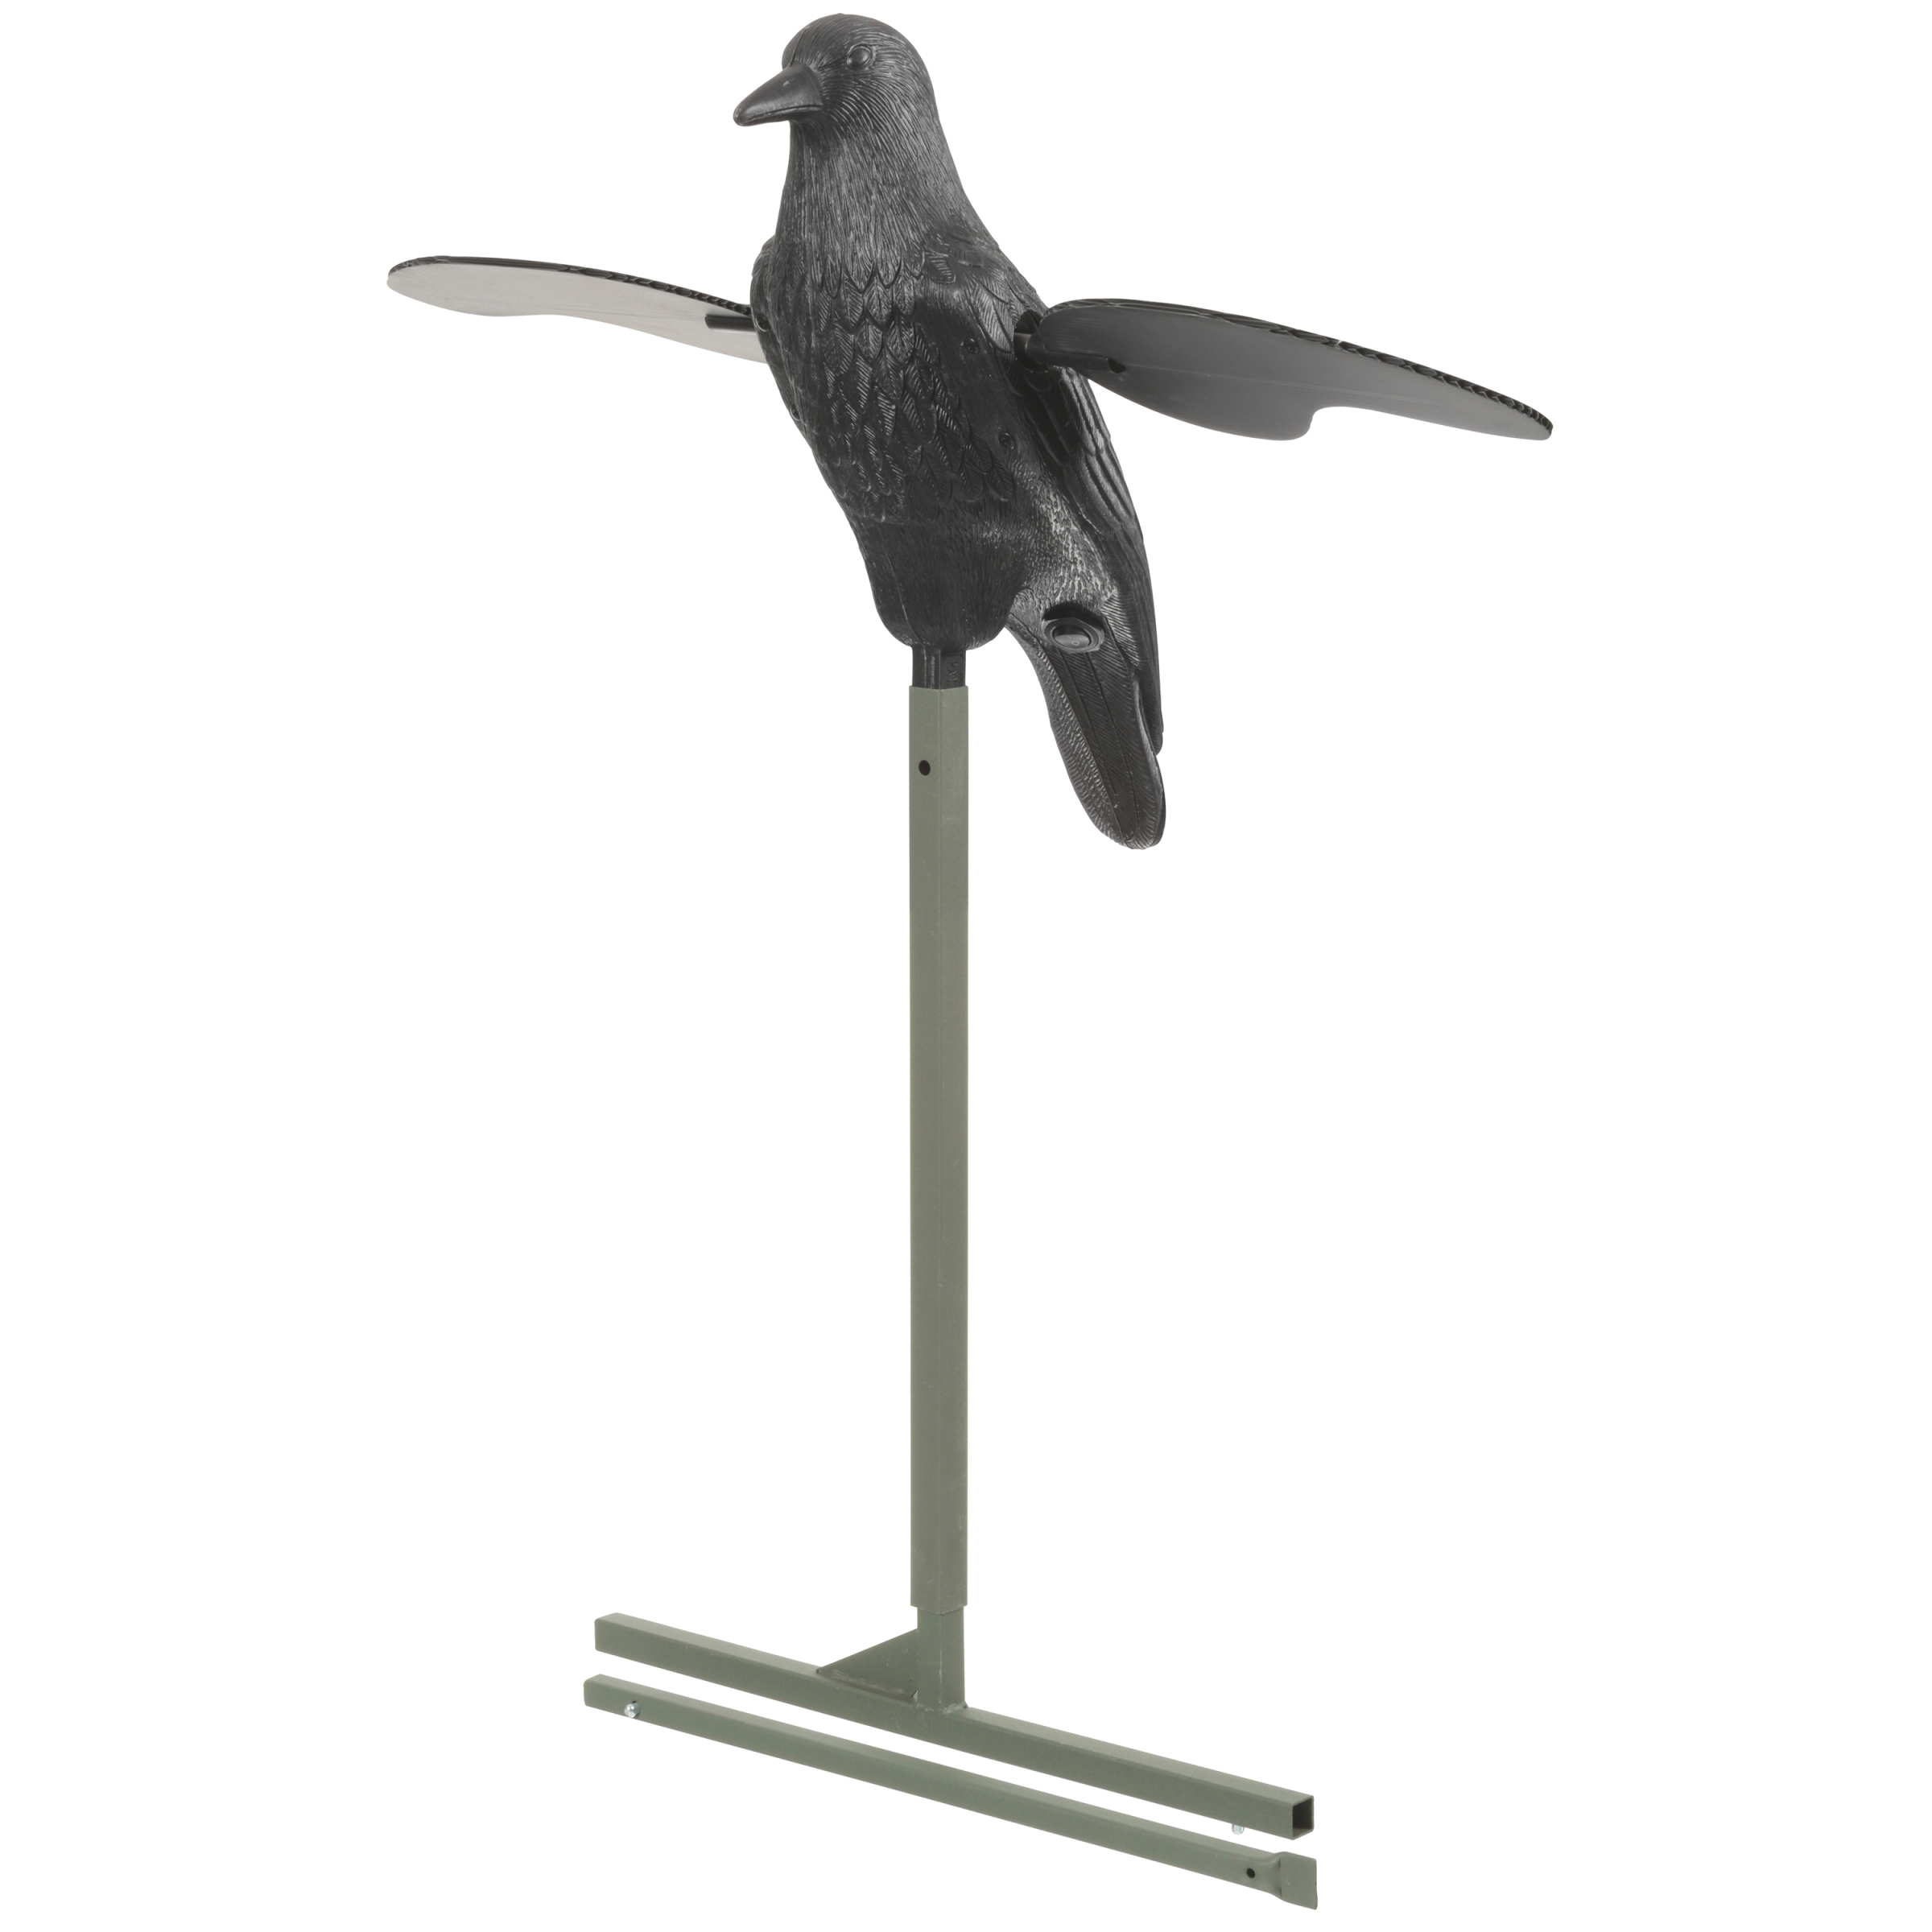 Mojo Outdoors Mojo Crow Decoy by Huntwise Inc., dba MOJO Outdoors